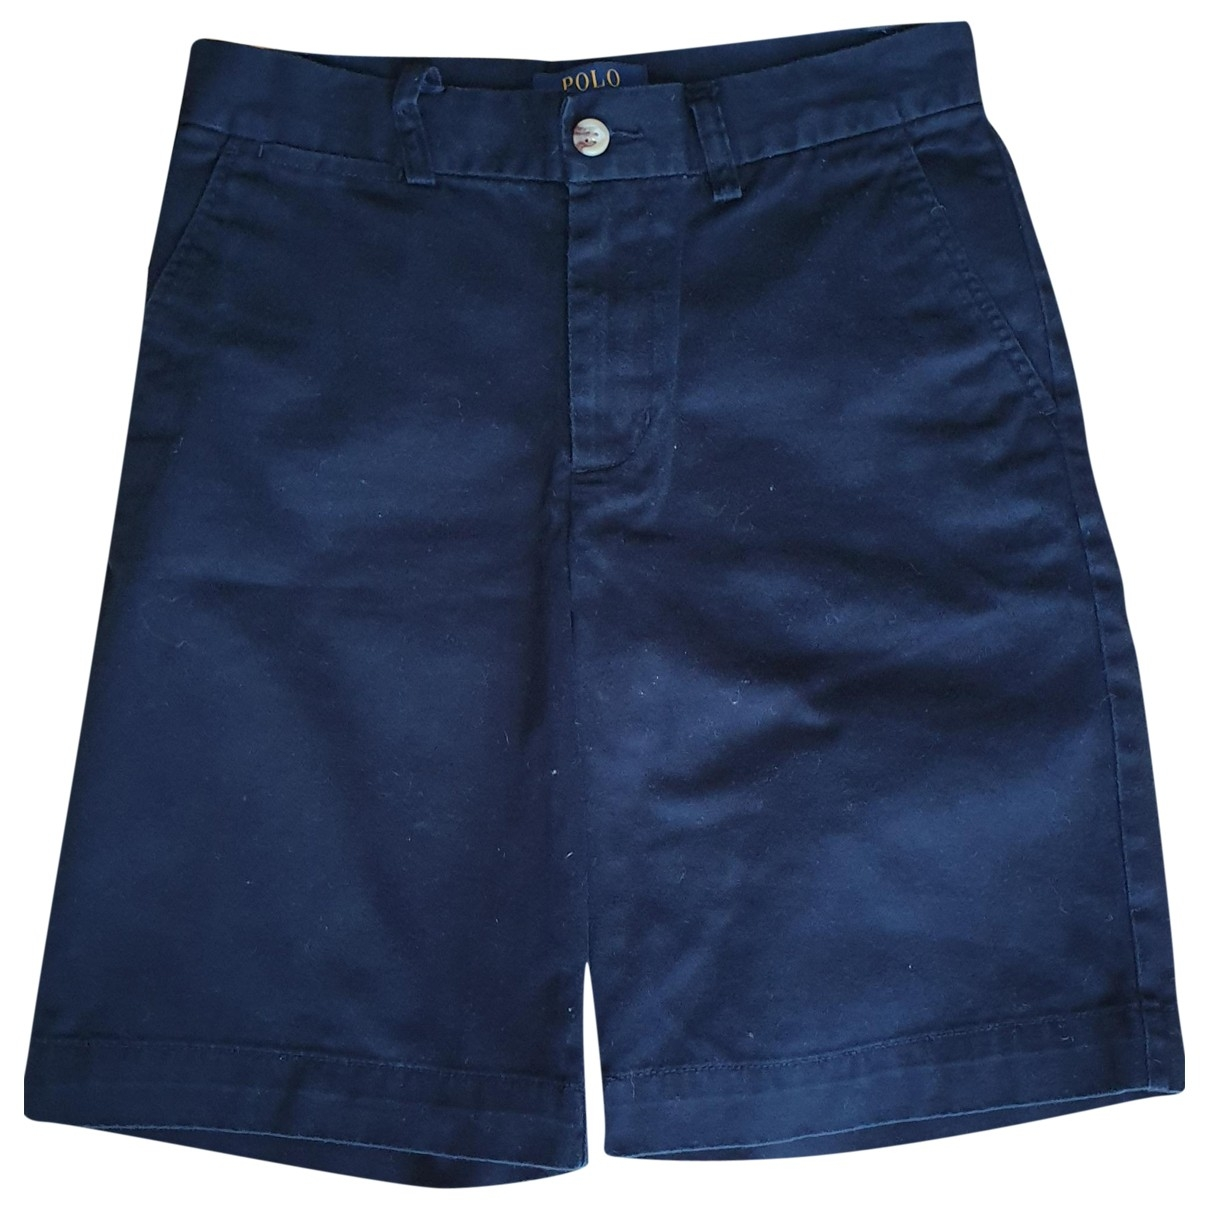 Polo Ralph Lauren \N Blue Cotton Shorts for Kids 12 years - XS UK